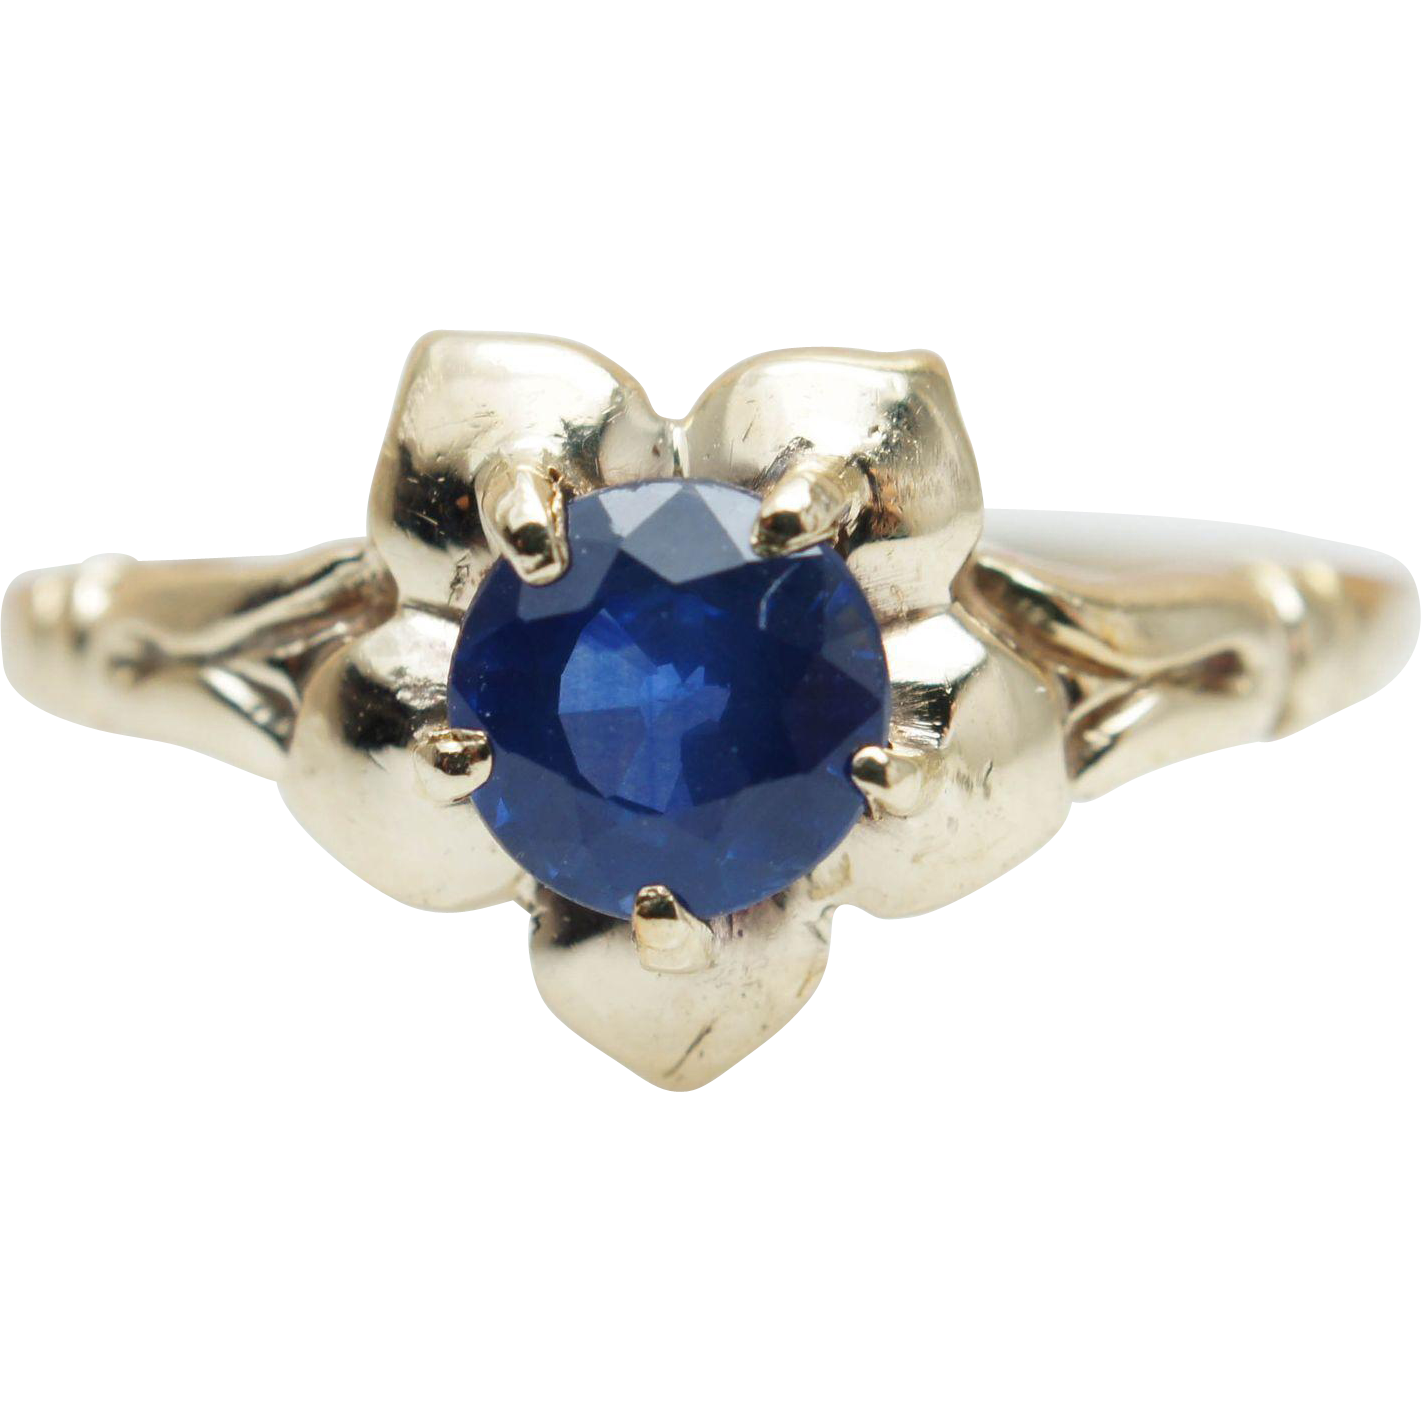 Vintage Natural Blue Sapphire 10k Yellow Gold Flower Promise Ring from jkjc o